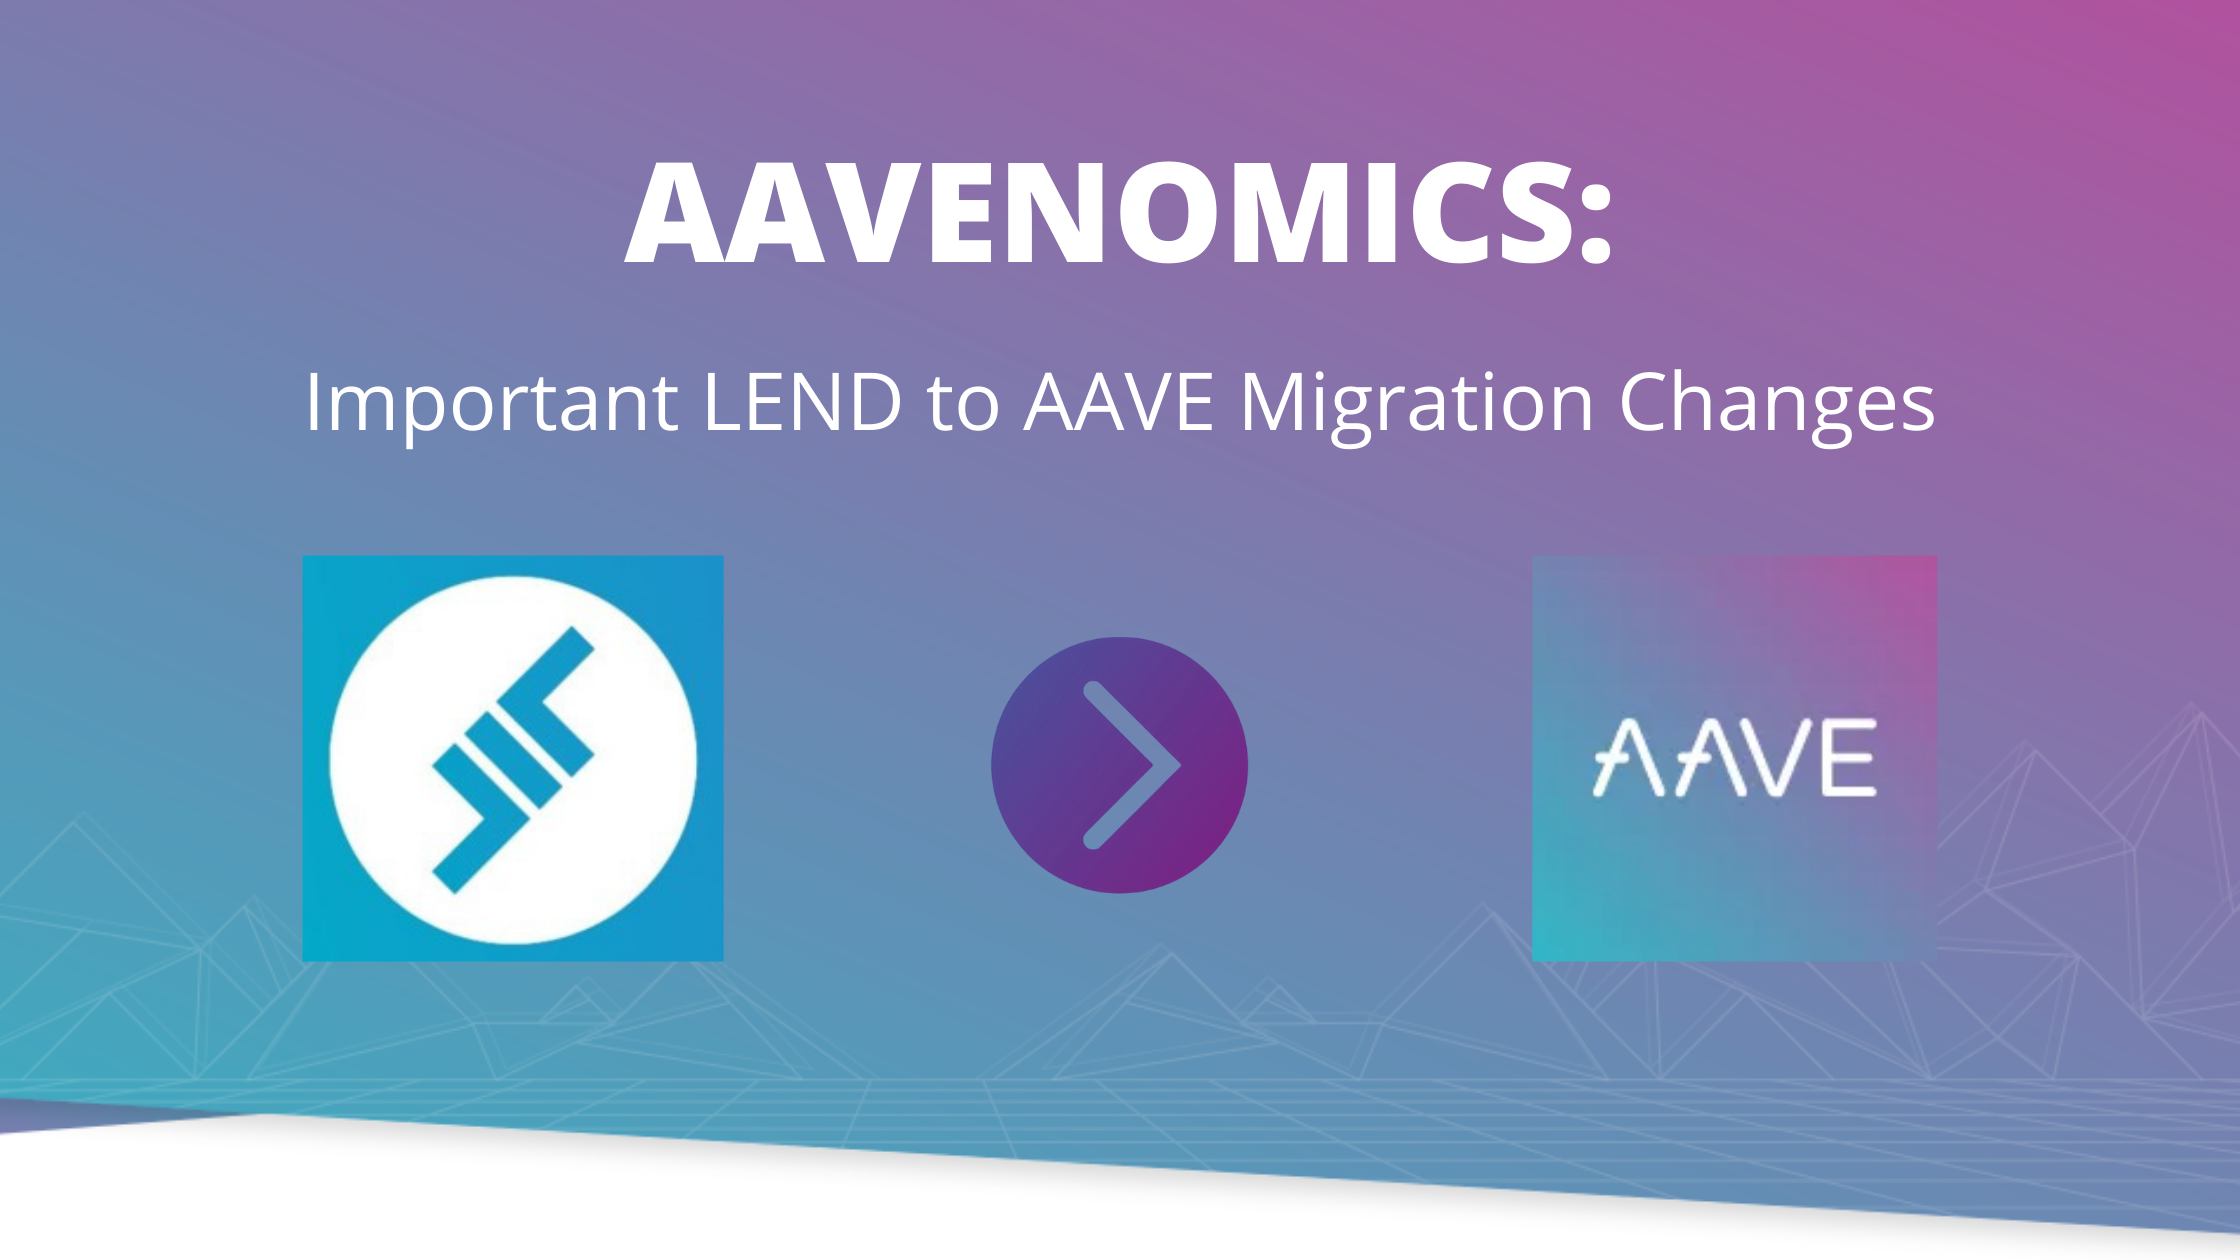 AAVENOMICS LEND to AAVE